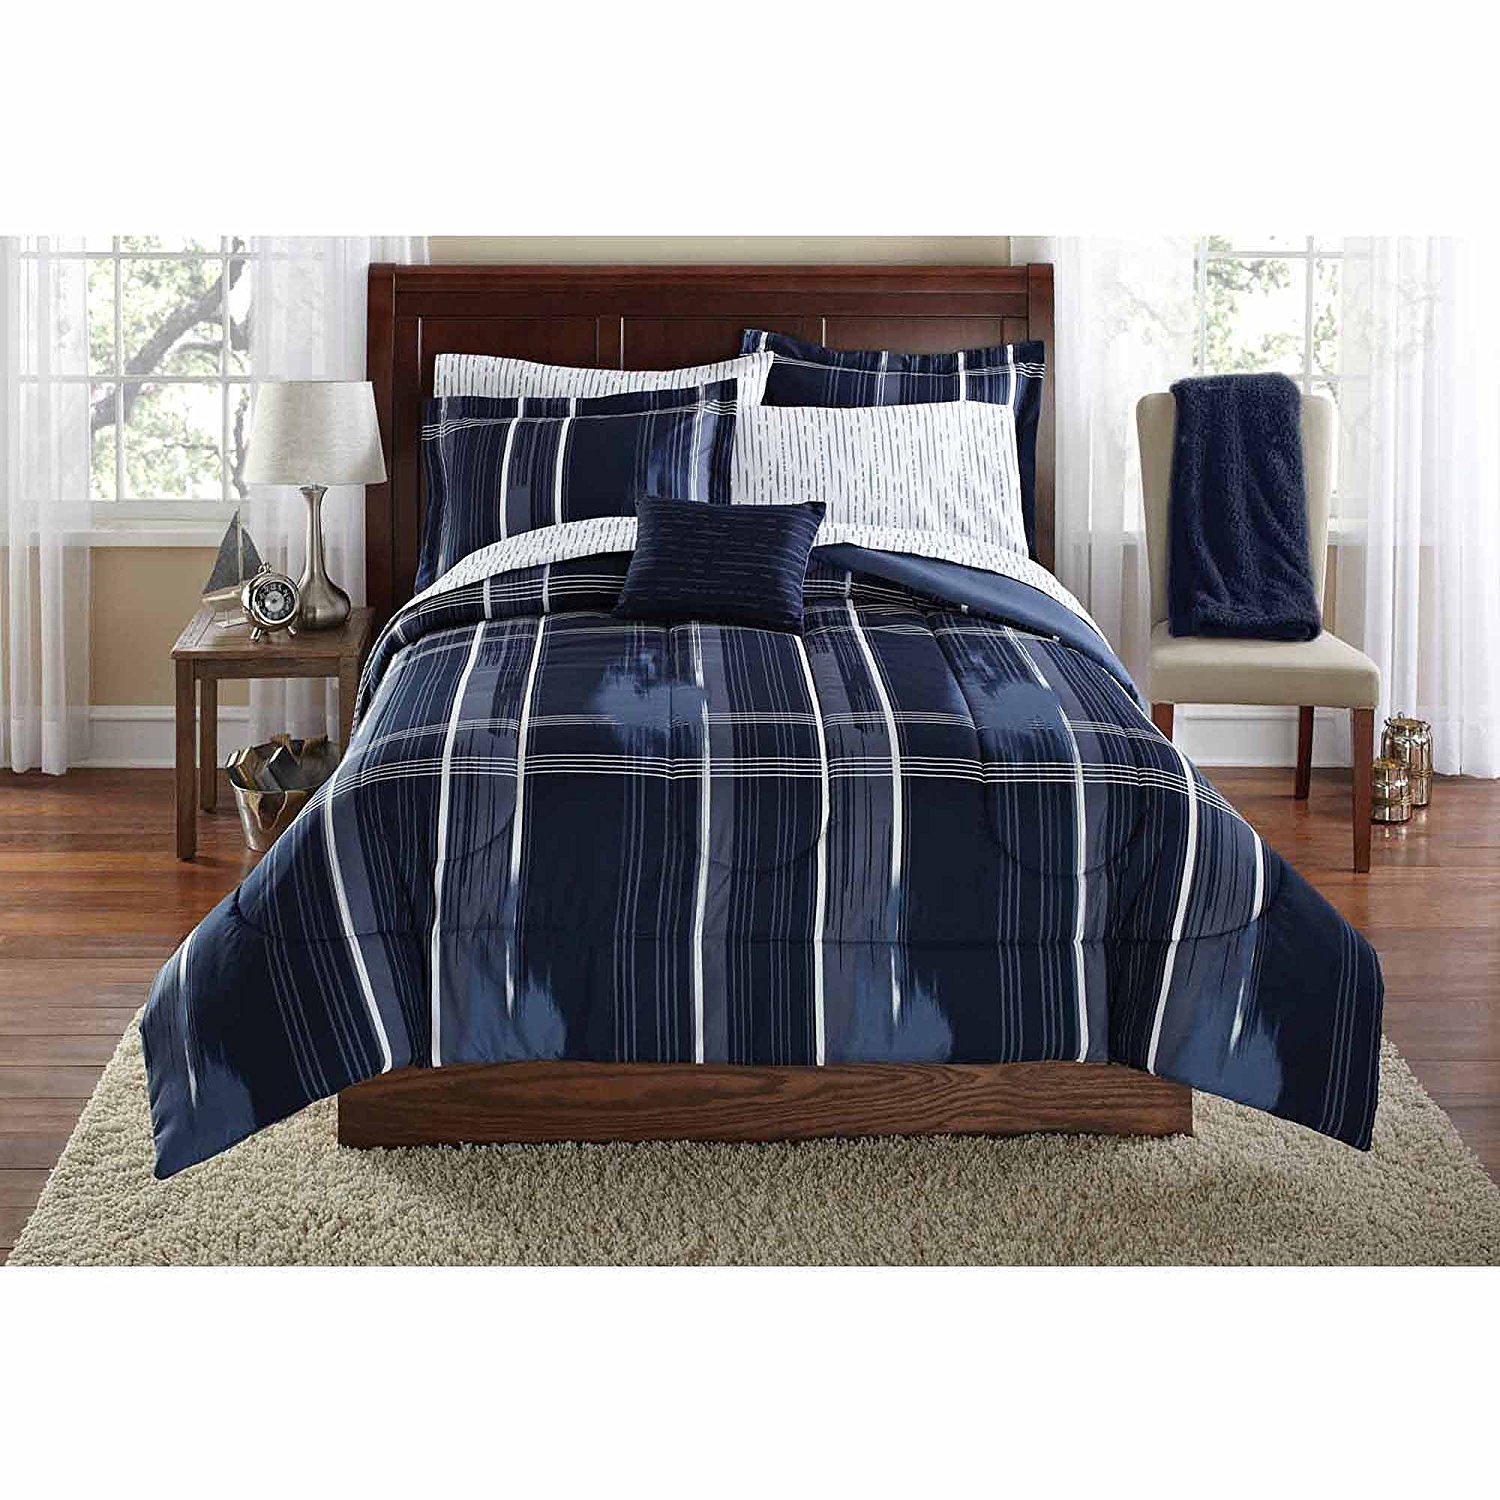 Mainstays Teen Modern Geometric Plaid Navy Blue Reversible Bedding Full Comforter for Boys (8 Piece in a Bag)